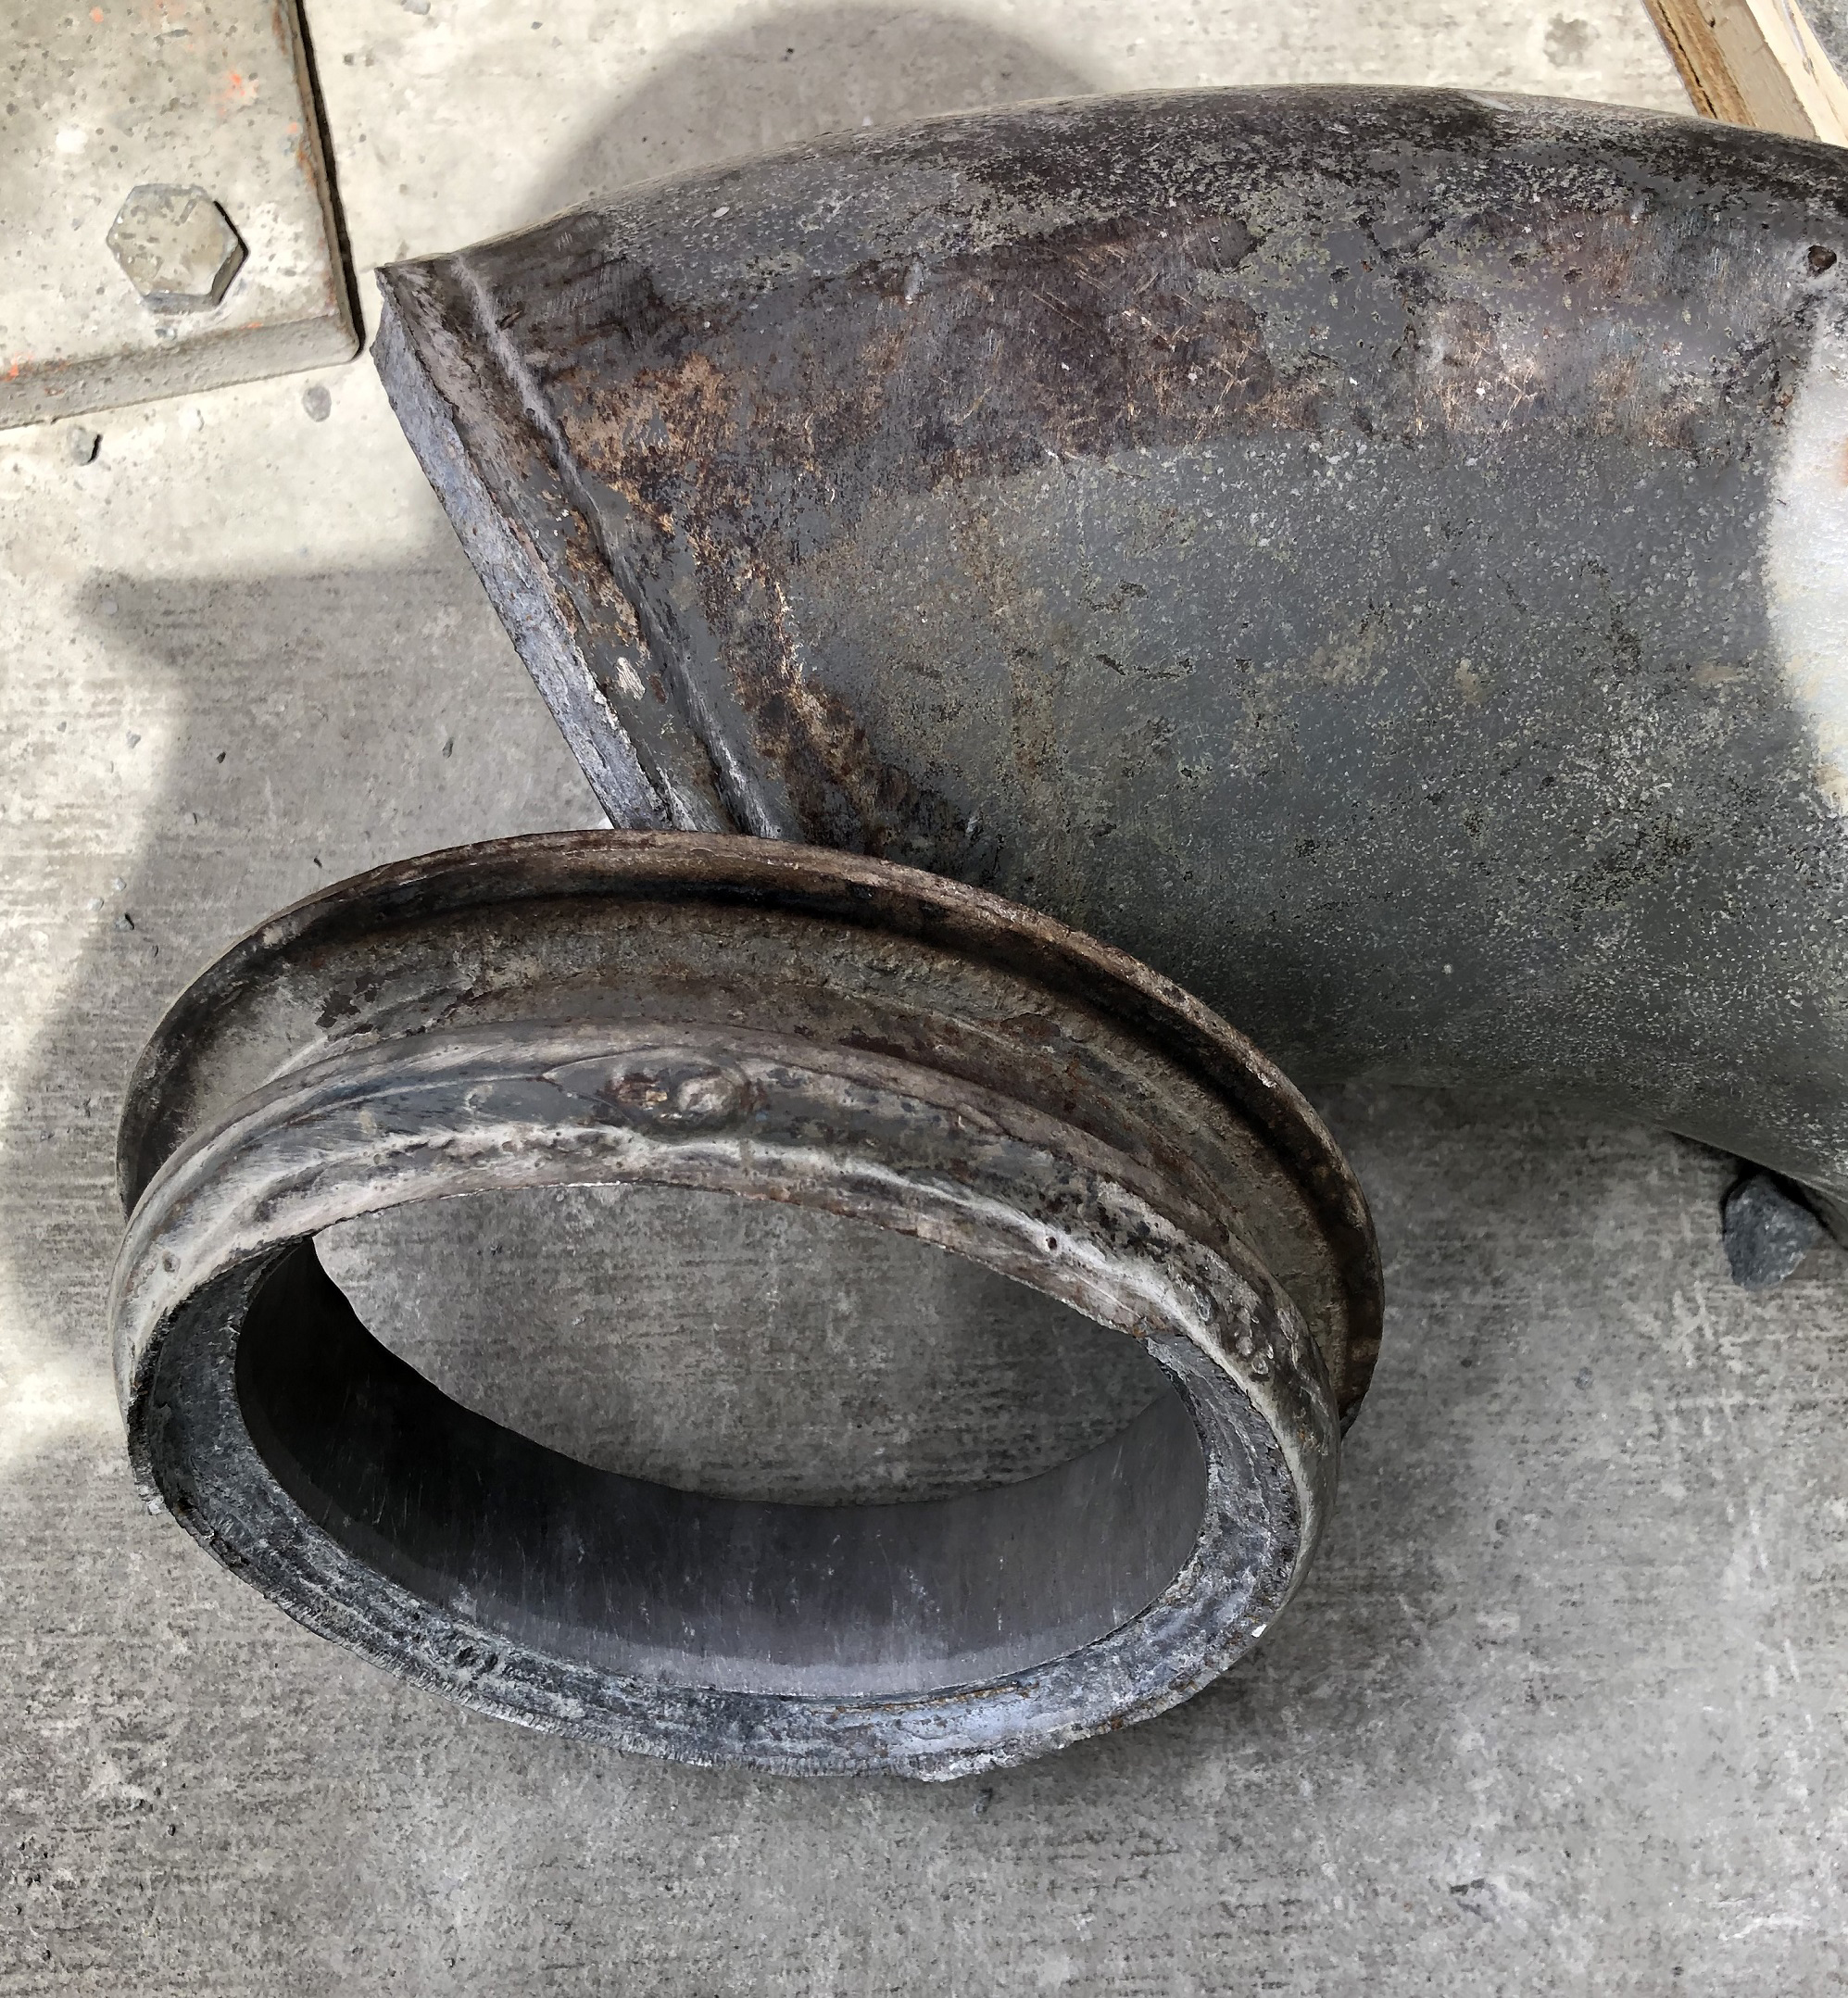 Photograph 3 - Failed flange on steel reducer bend.